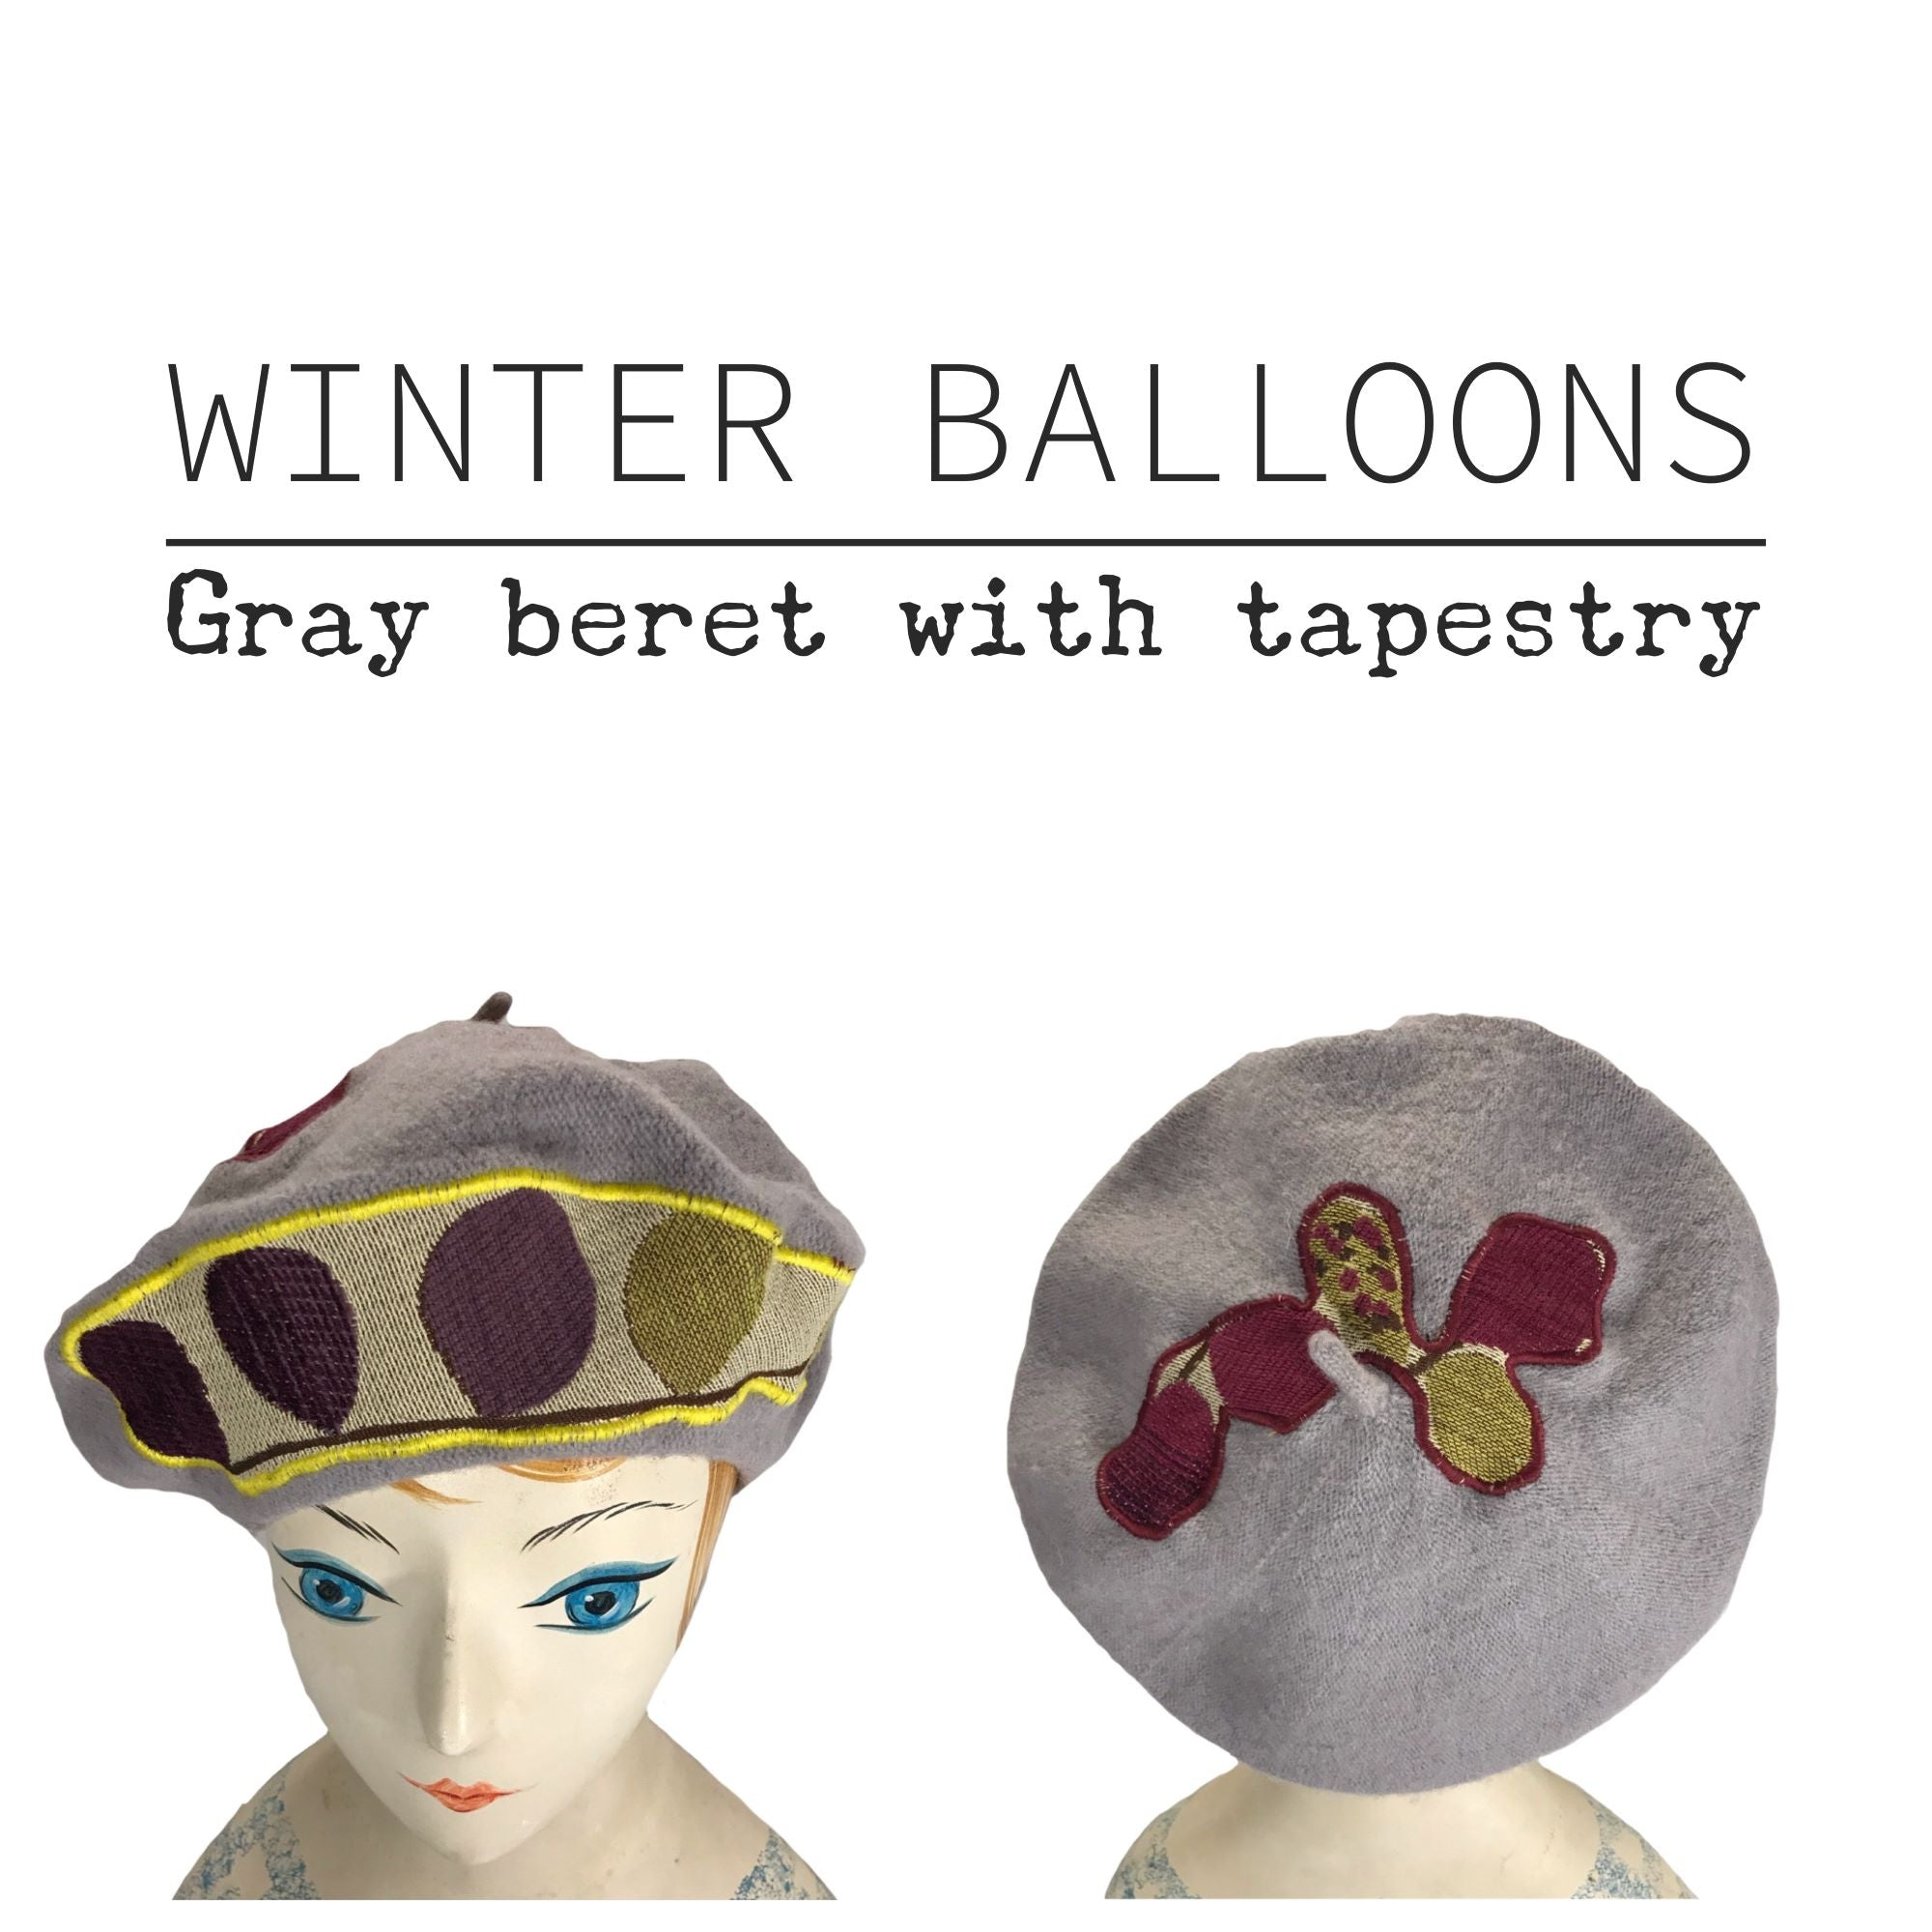 Winter Balloons